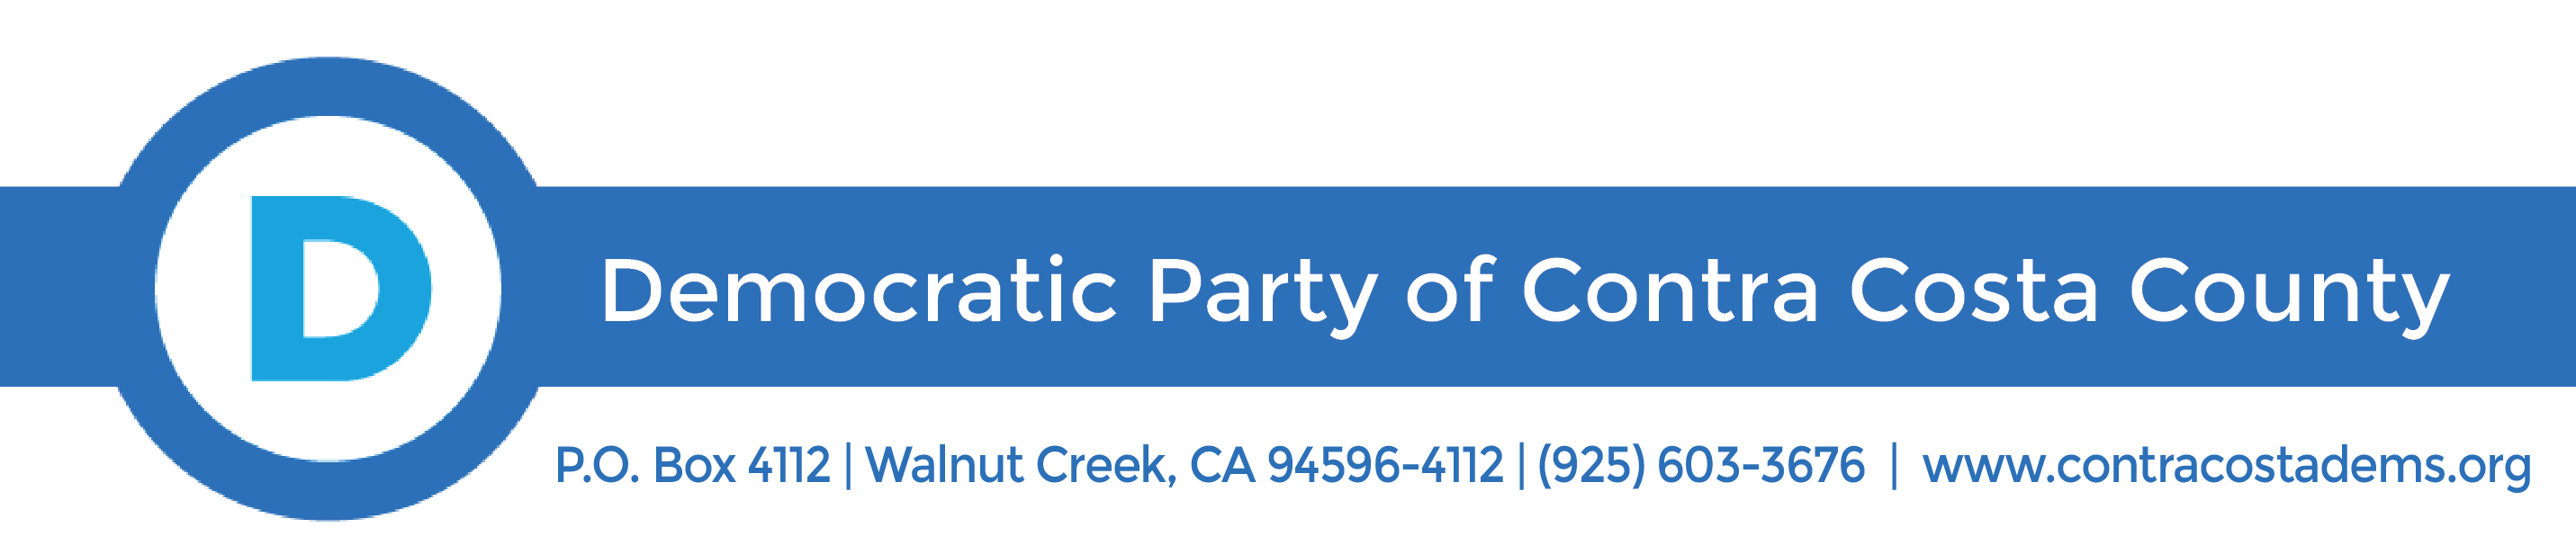 Democratic Party of Contra Costa County (Federal Account)